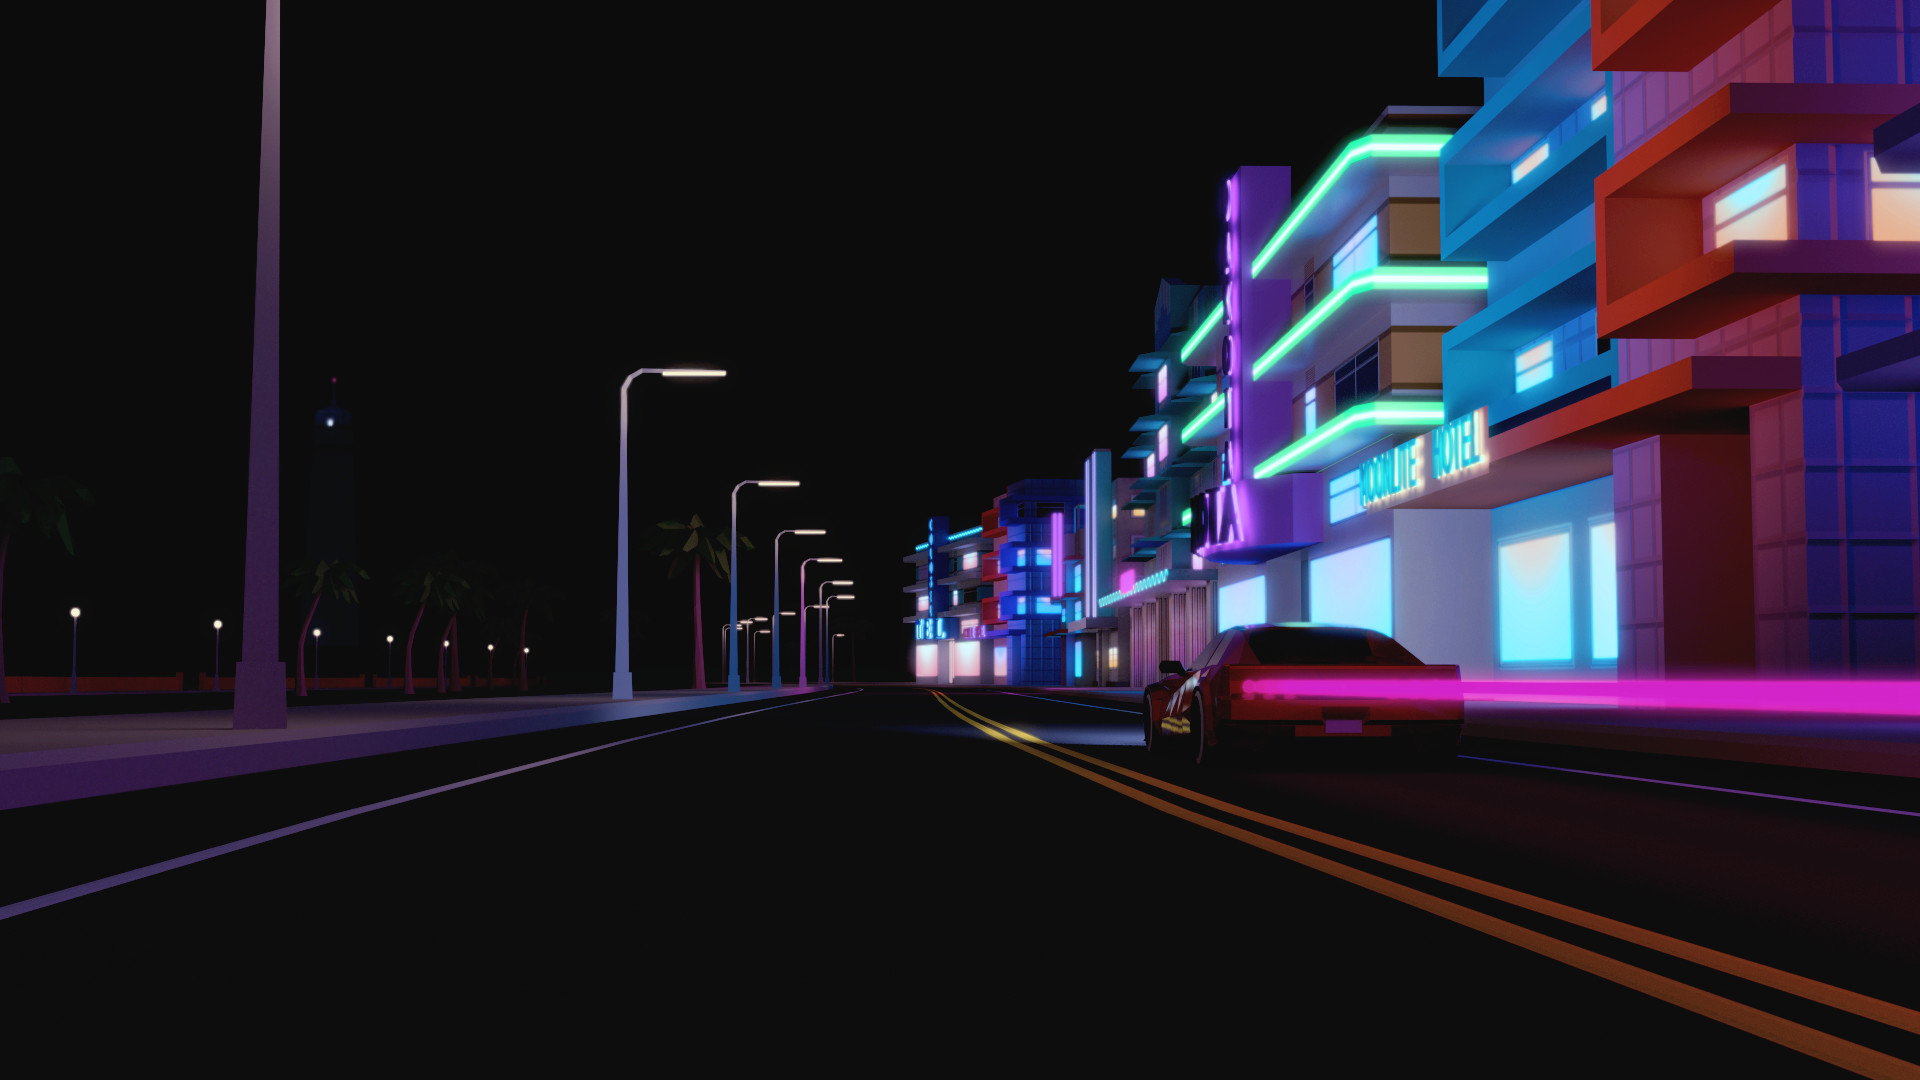 1920x1080 General  city urban street car CGI render building night city  lights motion blur Miami Florida